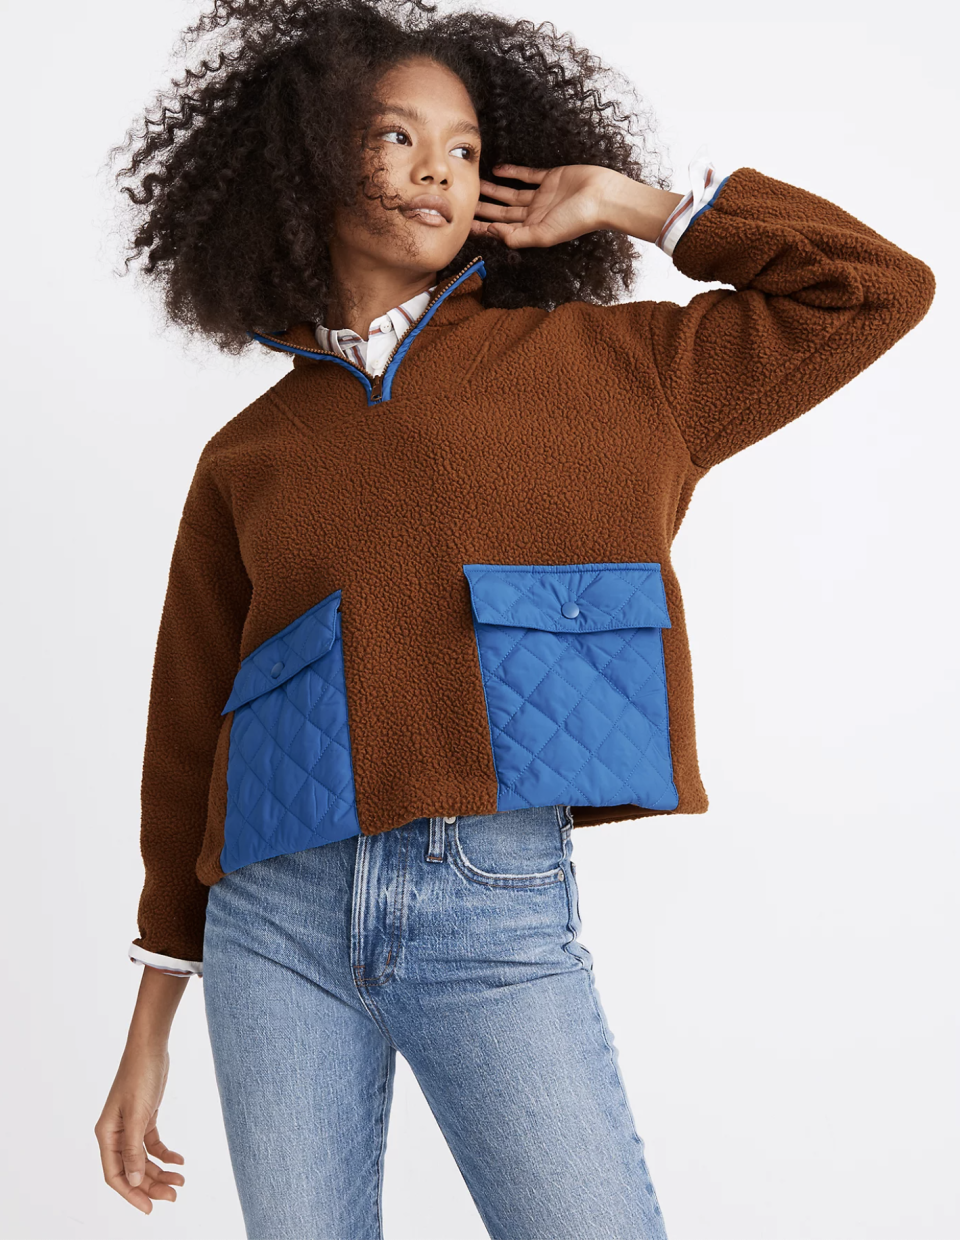 "<p><strong>Madewell</strong></p><p>madewell.com</p><p><strong>$128.00</strong></p><p><a href=""https://go.redirectingat.com?id=74968X1596630&url=https%3A%2F%2Fwww.madewell.com%2F%2528re%2529sourced-fleece-quilted-pocket-popover-jacket-MC240.html&sref=https%3A%2F%2Fwww.seventeen.com%2Ffashion%2Fg34644503%2Fmadewell-black-friday-sales-2020%2F"" rel=""nofollow noopener"" target=""_blank"" data-ylk=""slk:Shop Now"" class=""link rapid-noclick-resp"">Shop Now</a></p><p>The unexpected chocolate/cobalt combo feels so much cooler than your typical plain black fleece.</p>"